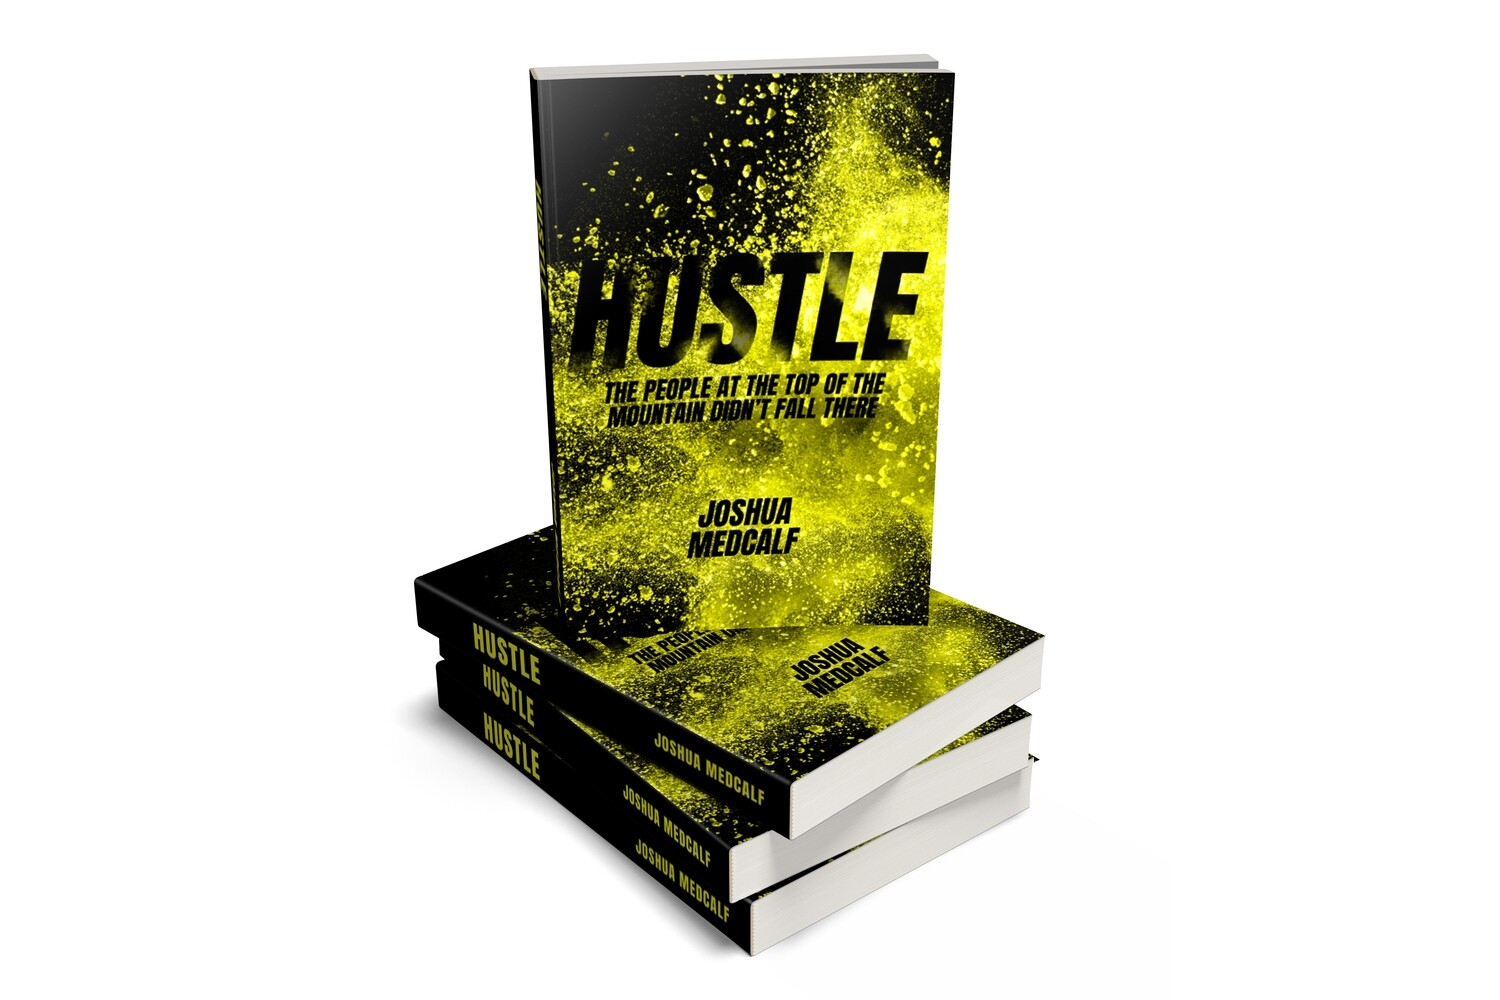 Hustle (3 signed copies)